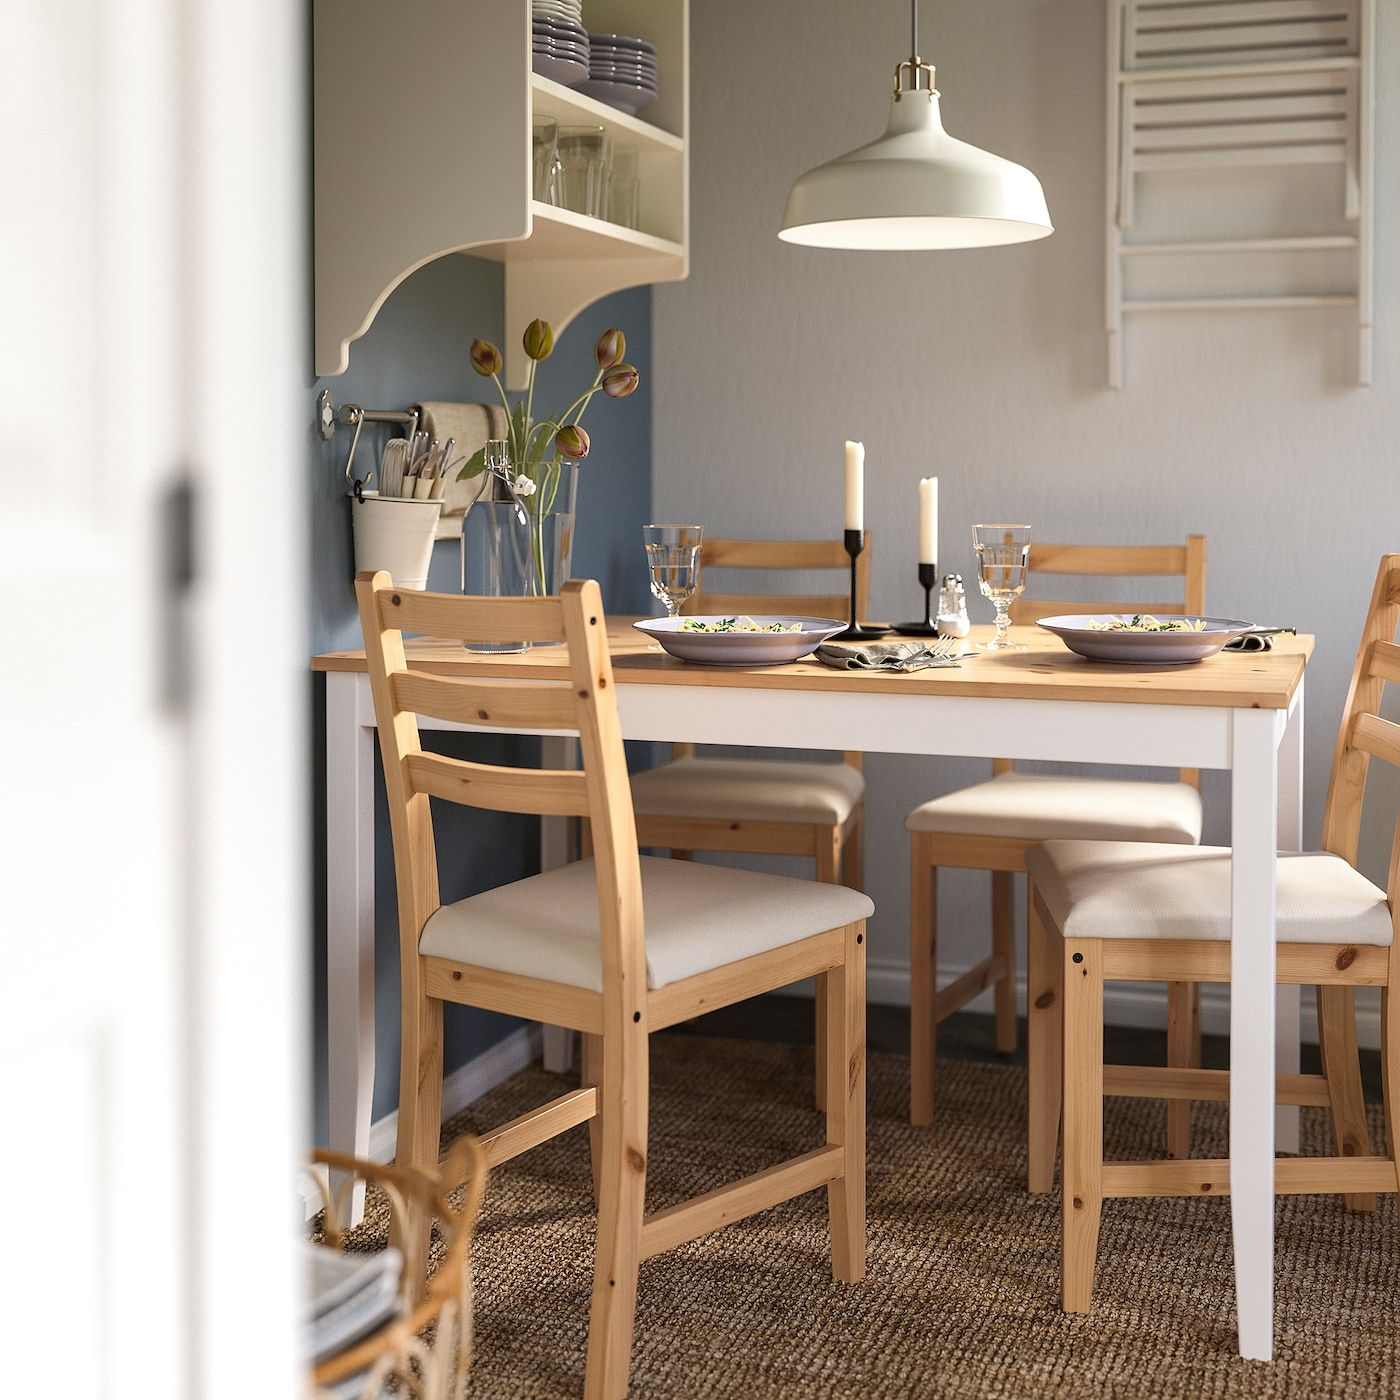 Lerhamn Table And 4 Chairs Light Antique Stain White Stain Vittaryd Beige Ikea Nel 2020 Sale Da Pranzo Piccole Idee Ikea Tavolo E Sedie